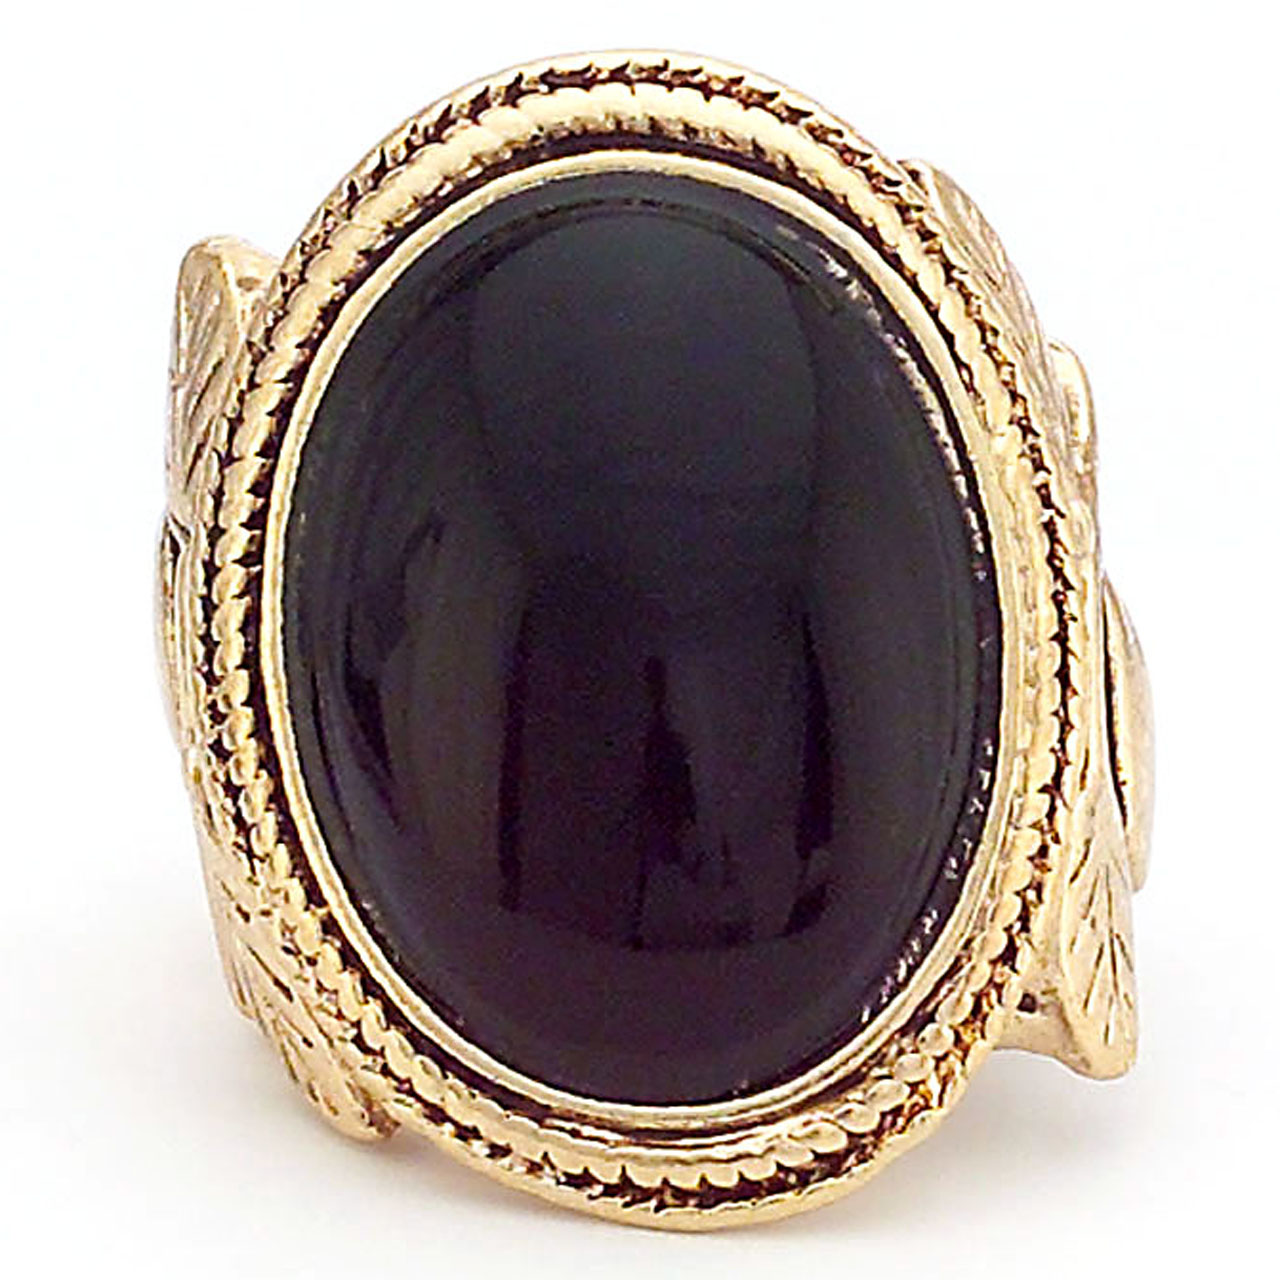 Celebrity Style Gold Ring with Oval Black Center Stone